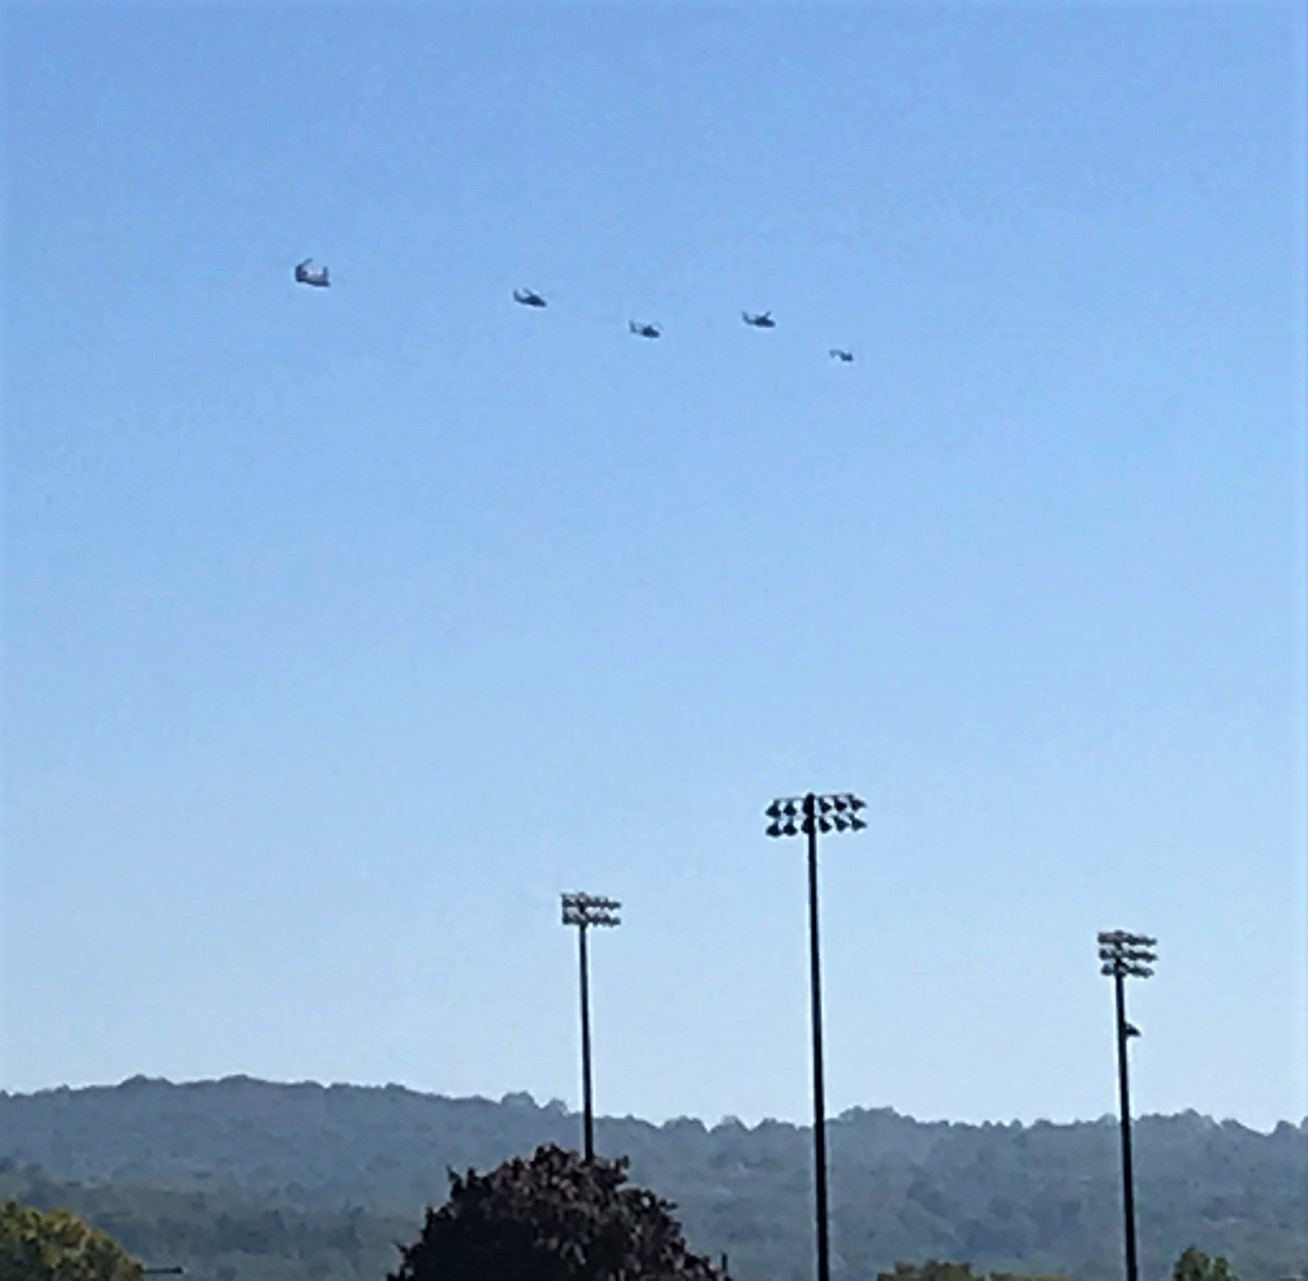 17a Helicopters departing